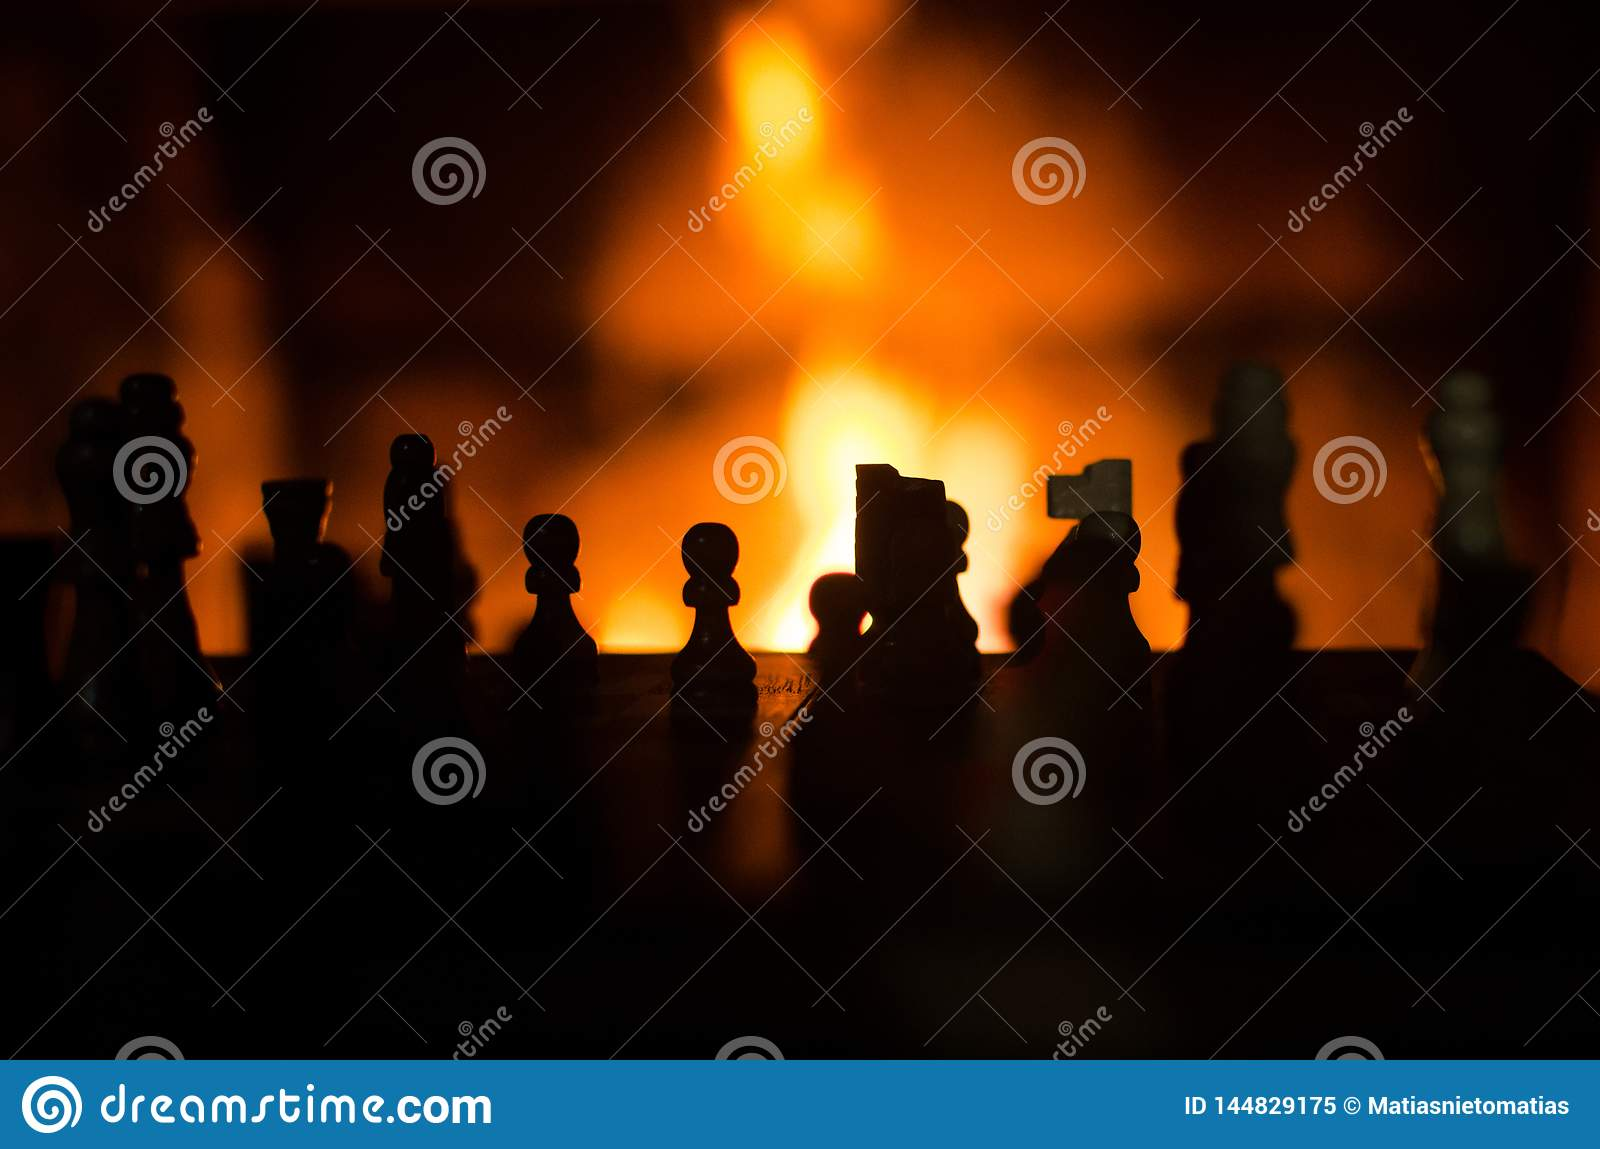 Chess figures silhouette with fire in the background